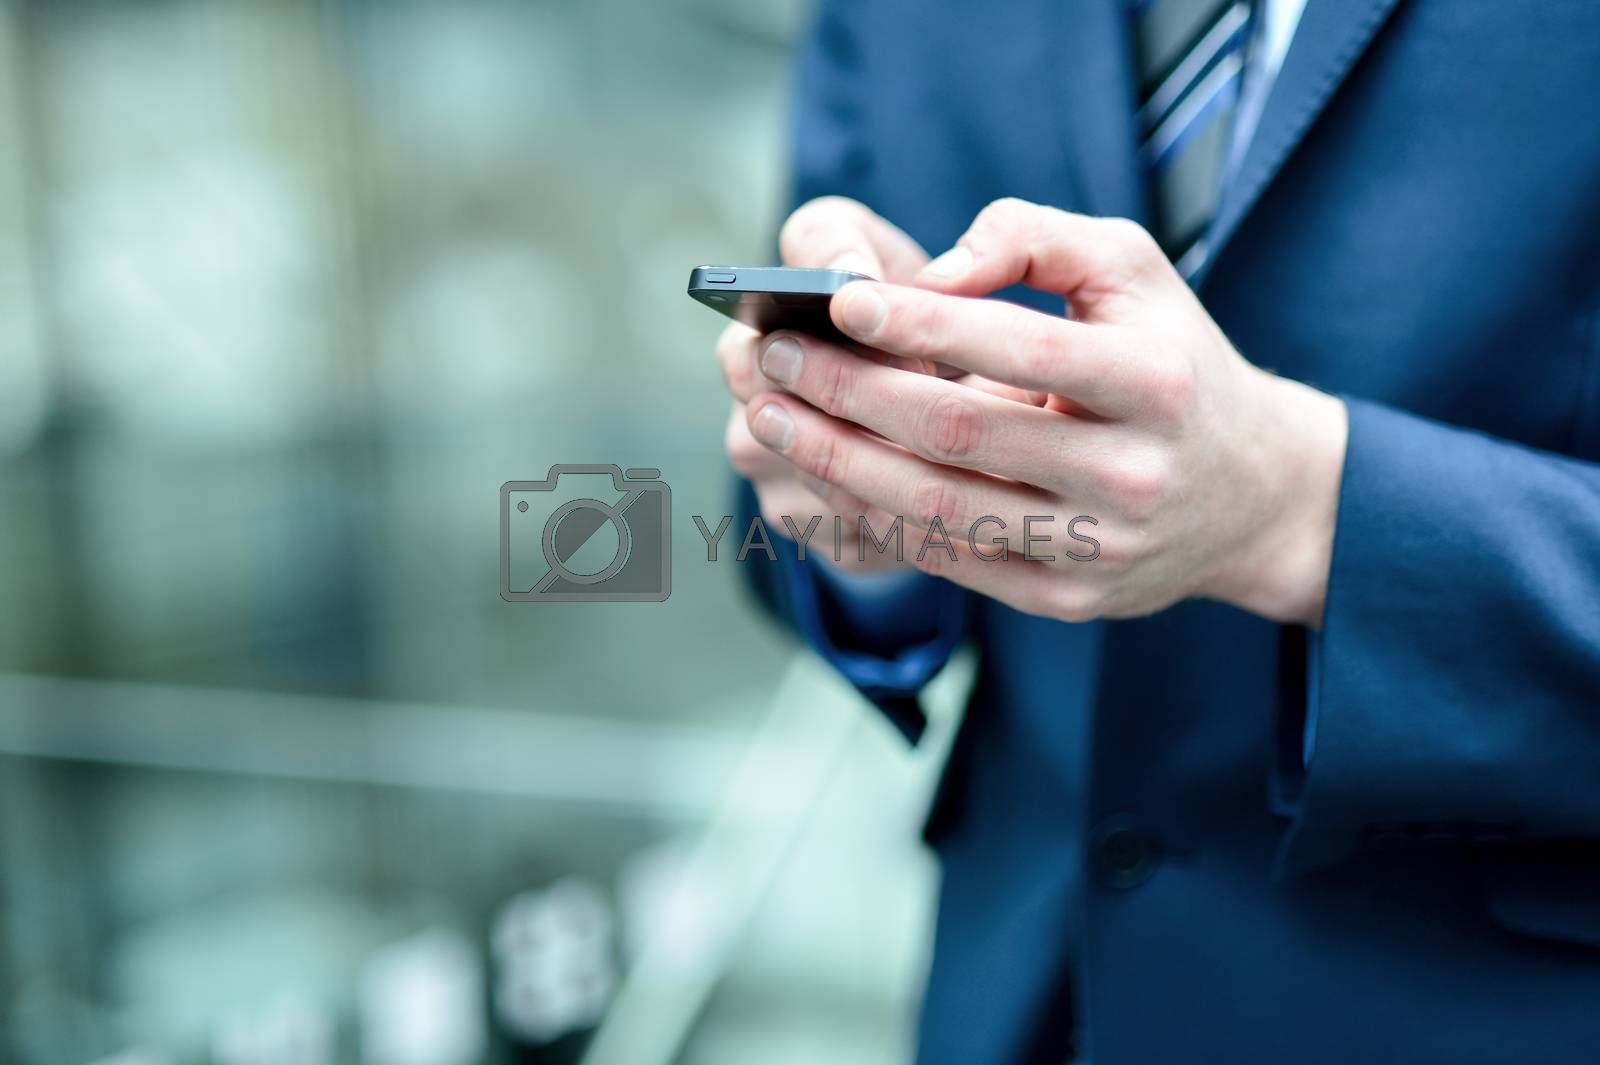 Royalty free image of Close up of a man using mobile phone by stockyimages